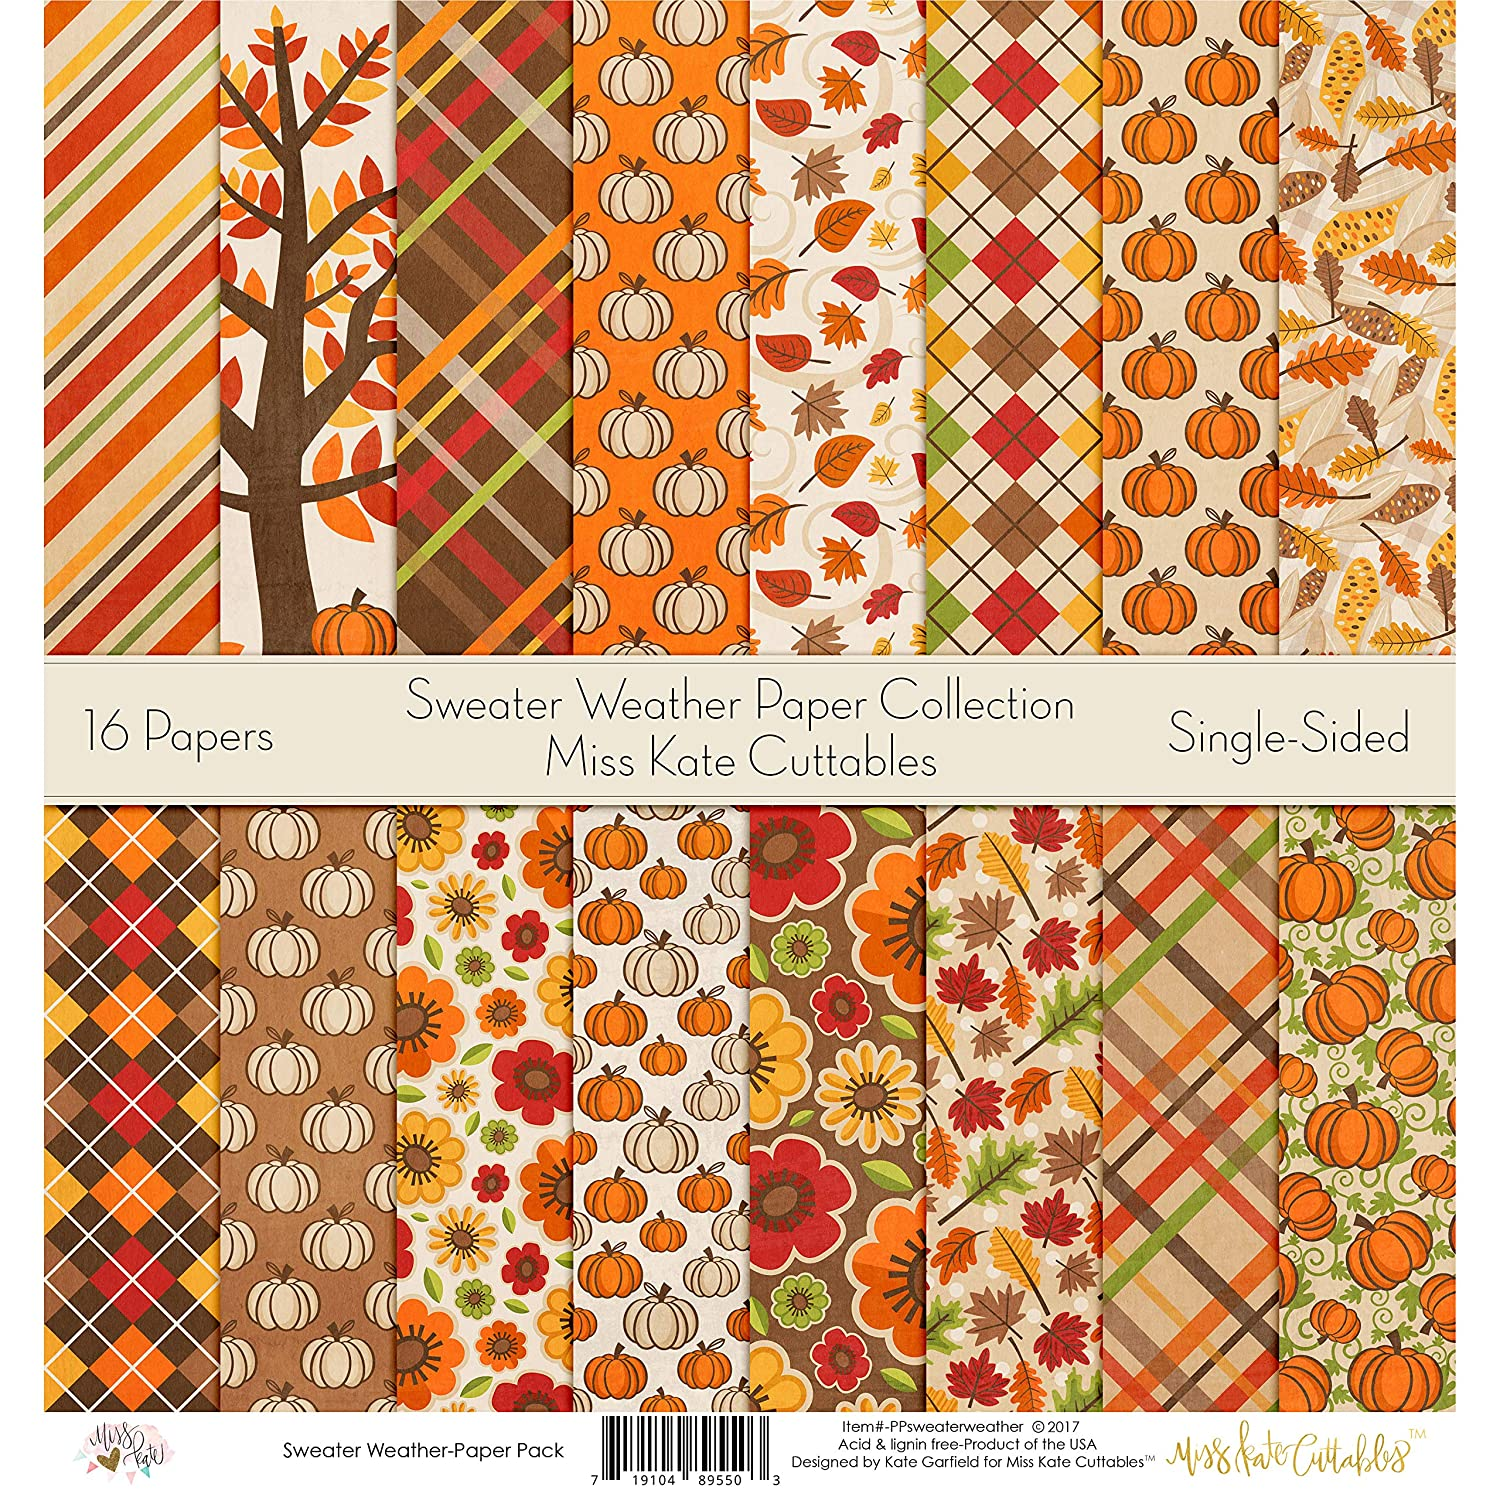 Pattern Paper Pack - Sweater Weather - Scrapbook Card Stock Single-Sided 12x12 Collection Includes 16 Sheets - by Miss Kate Cuttables